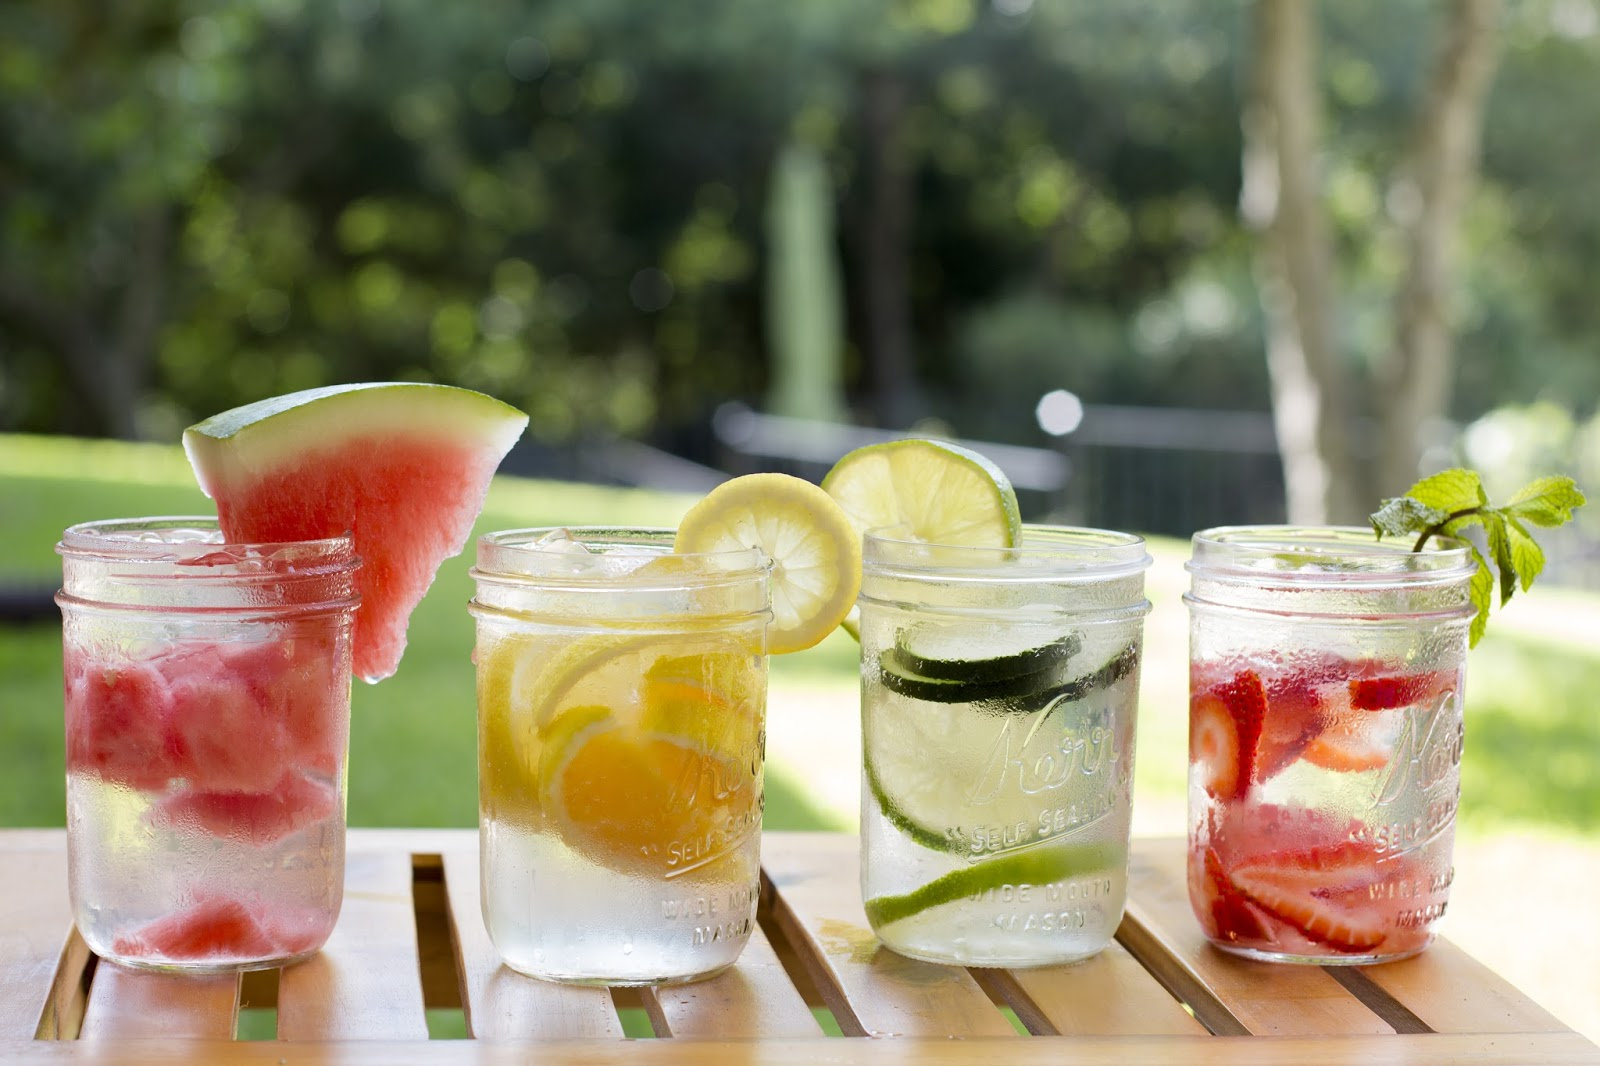 Bartender Mixology: Delicious Summer Drinks